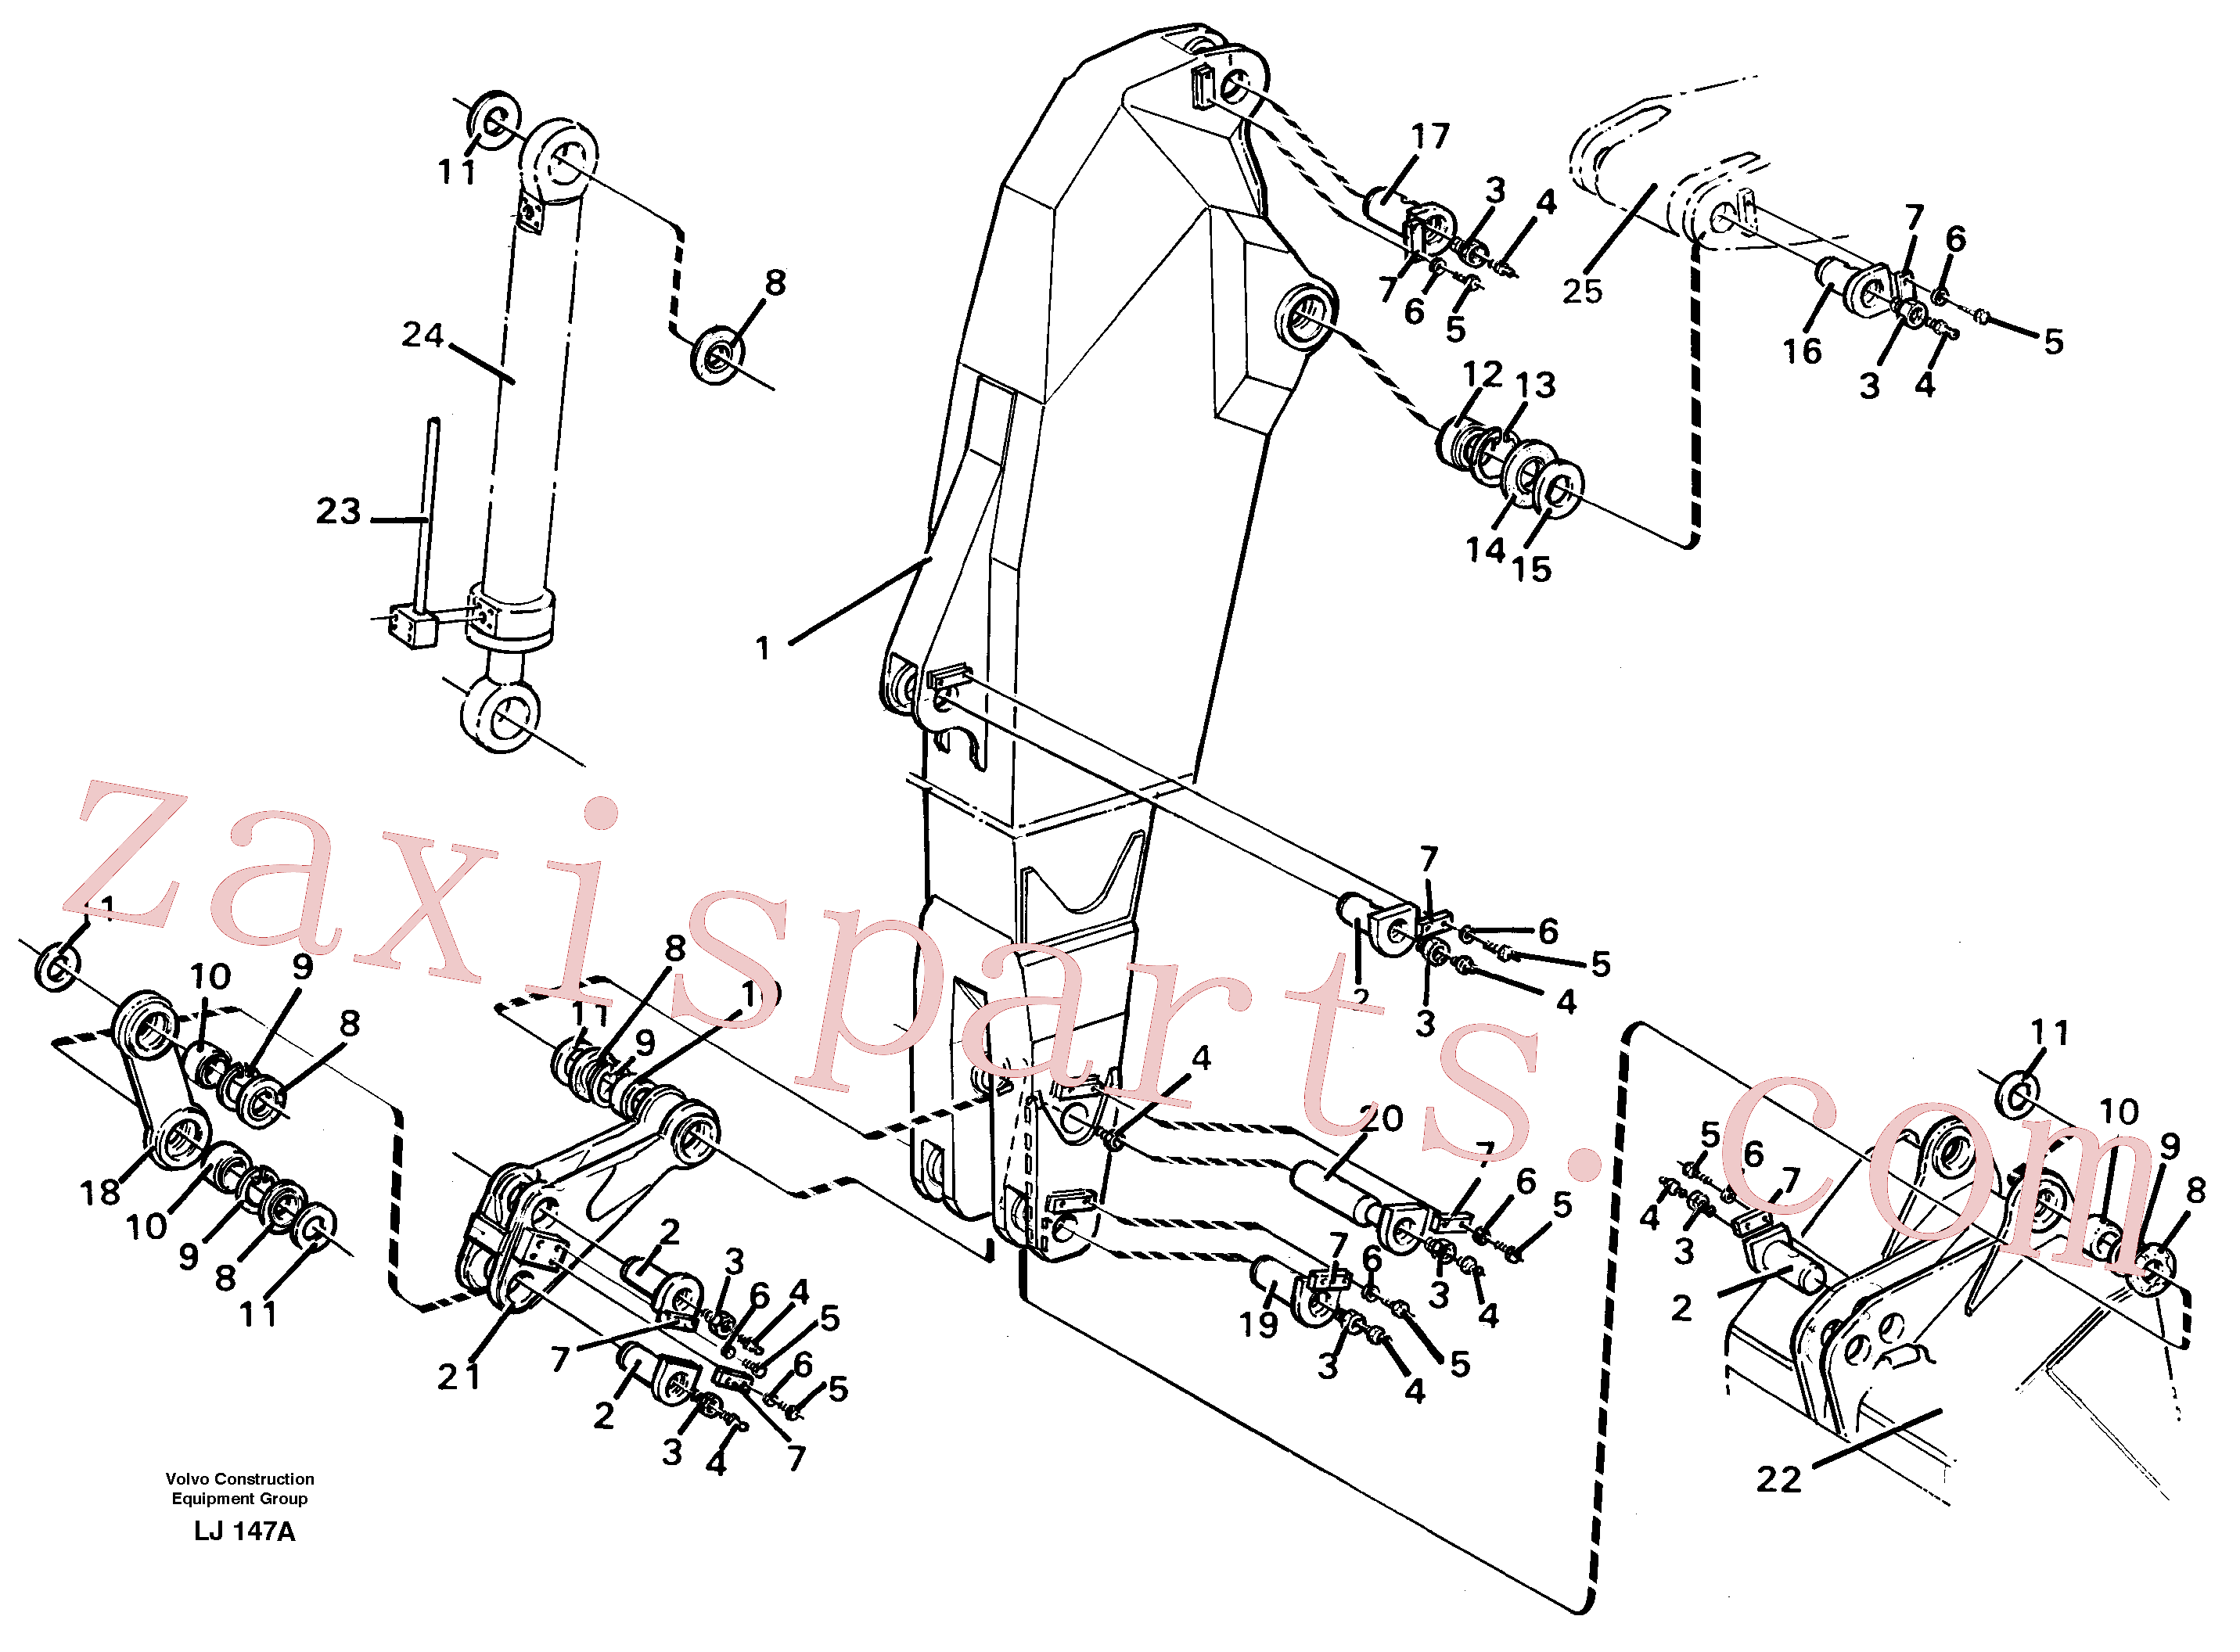 VOE14042998 for Volvo Backhoe dipper arm 2.80m(LJ147A assembly)